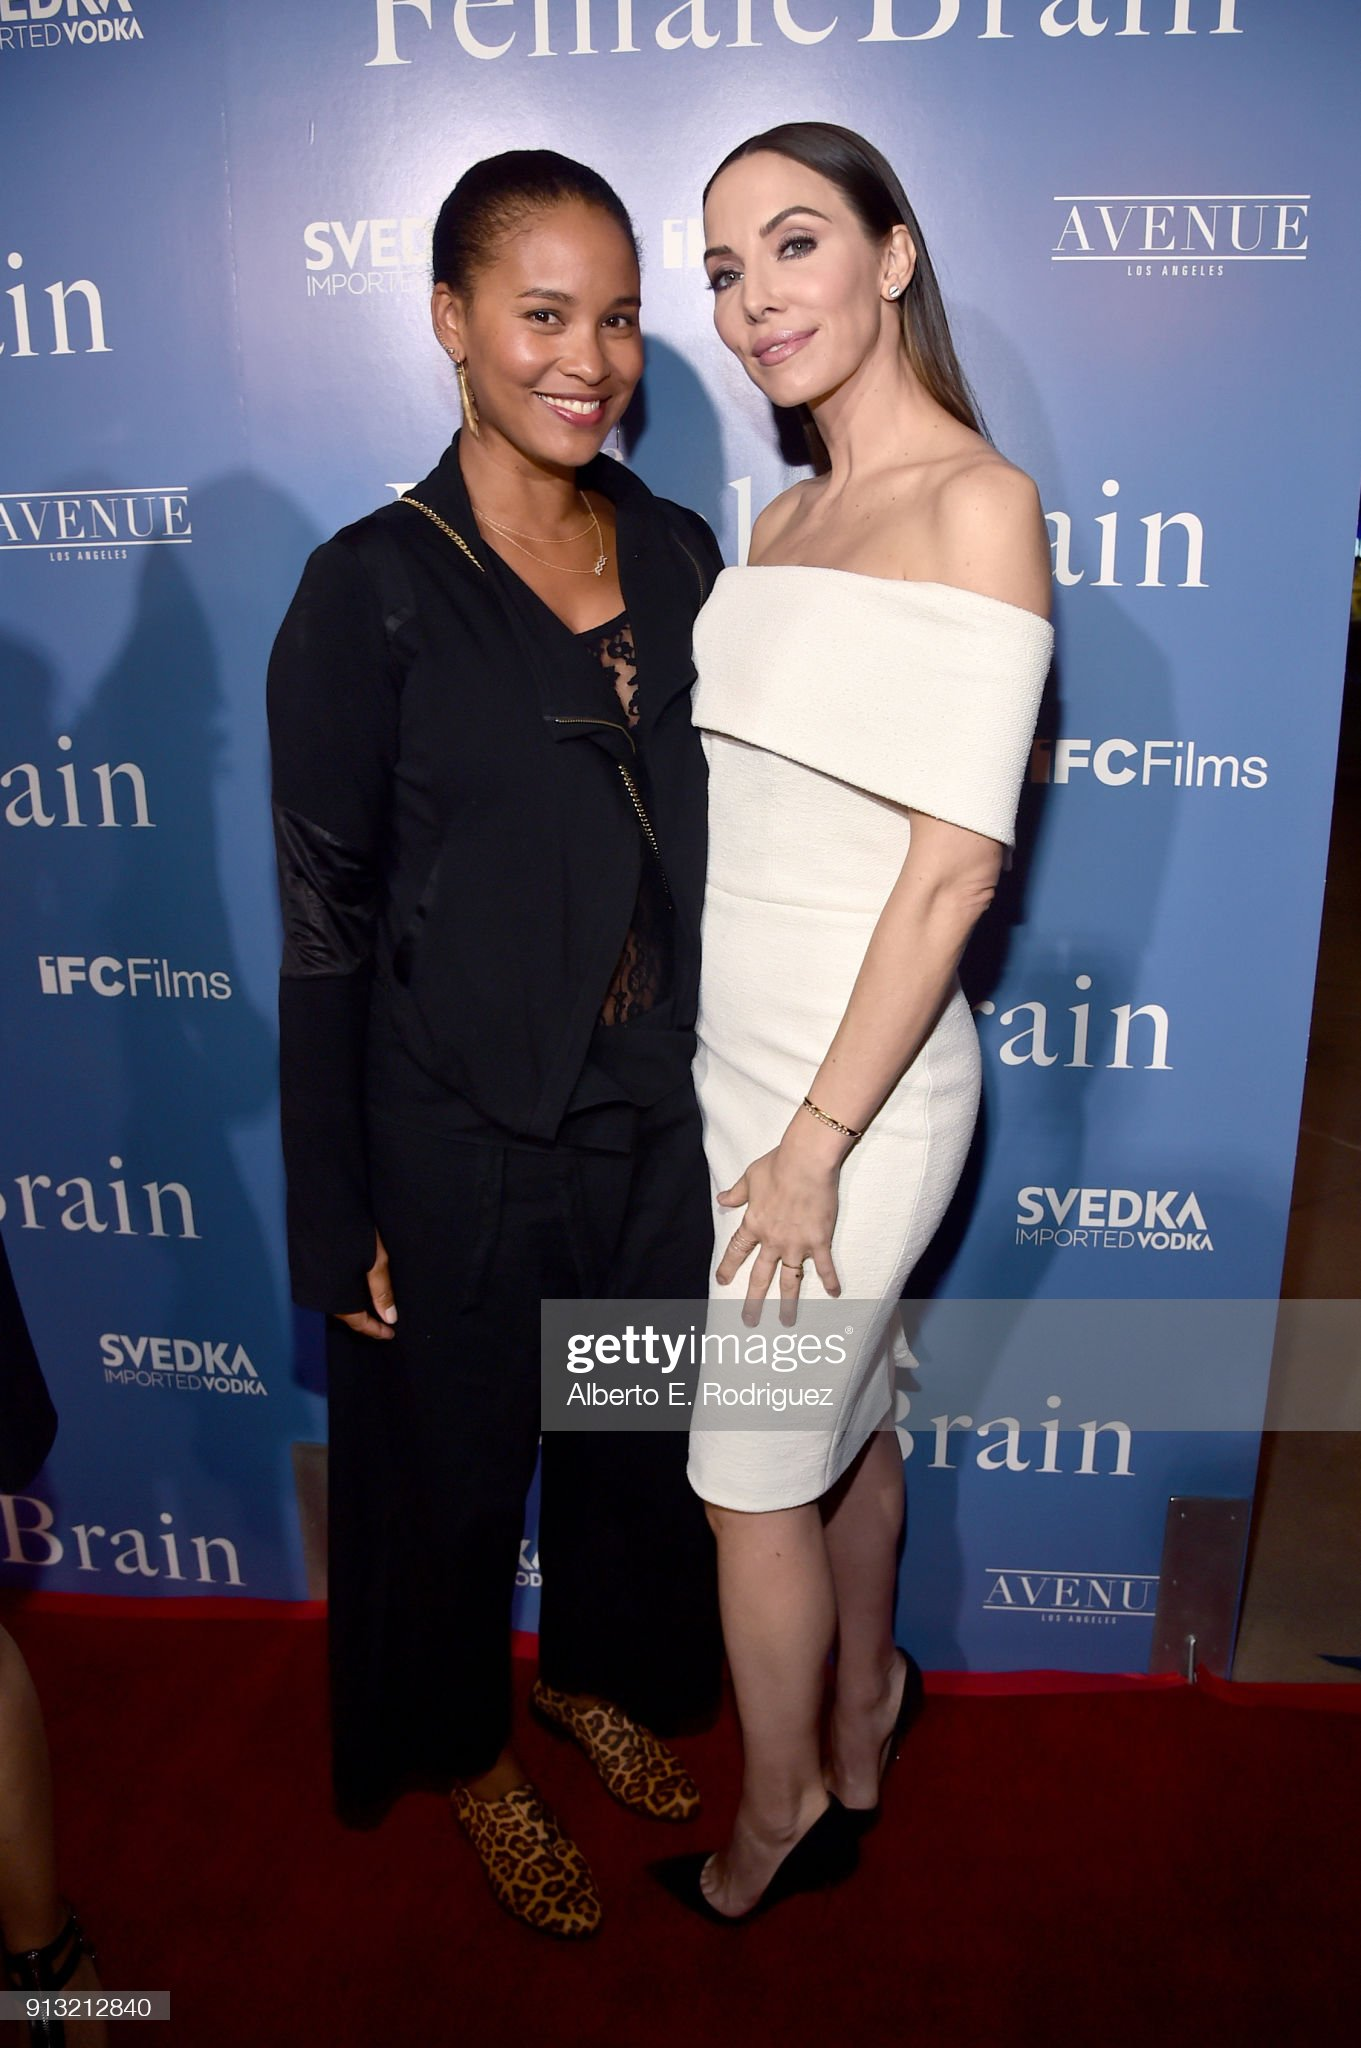 ¿Cuánto mide Joy Bryant? - Real height Joy-bryant-and-whitney-cummings-attend-the-premiere-of-ifc-films-the-picture-id913212840?s=2048x2048